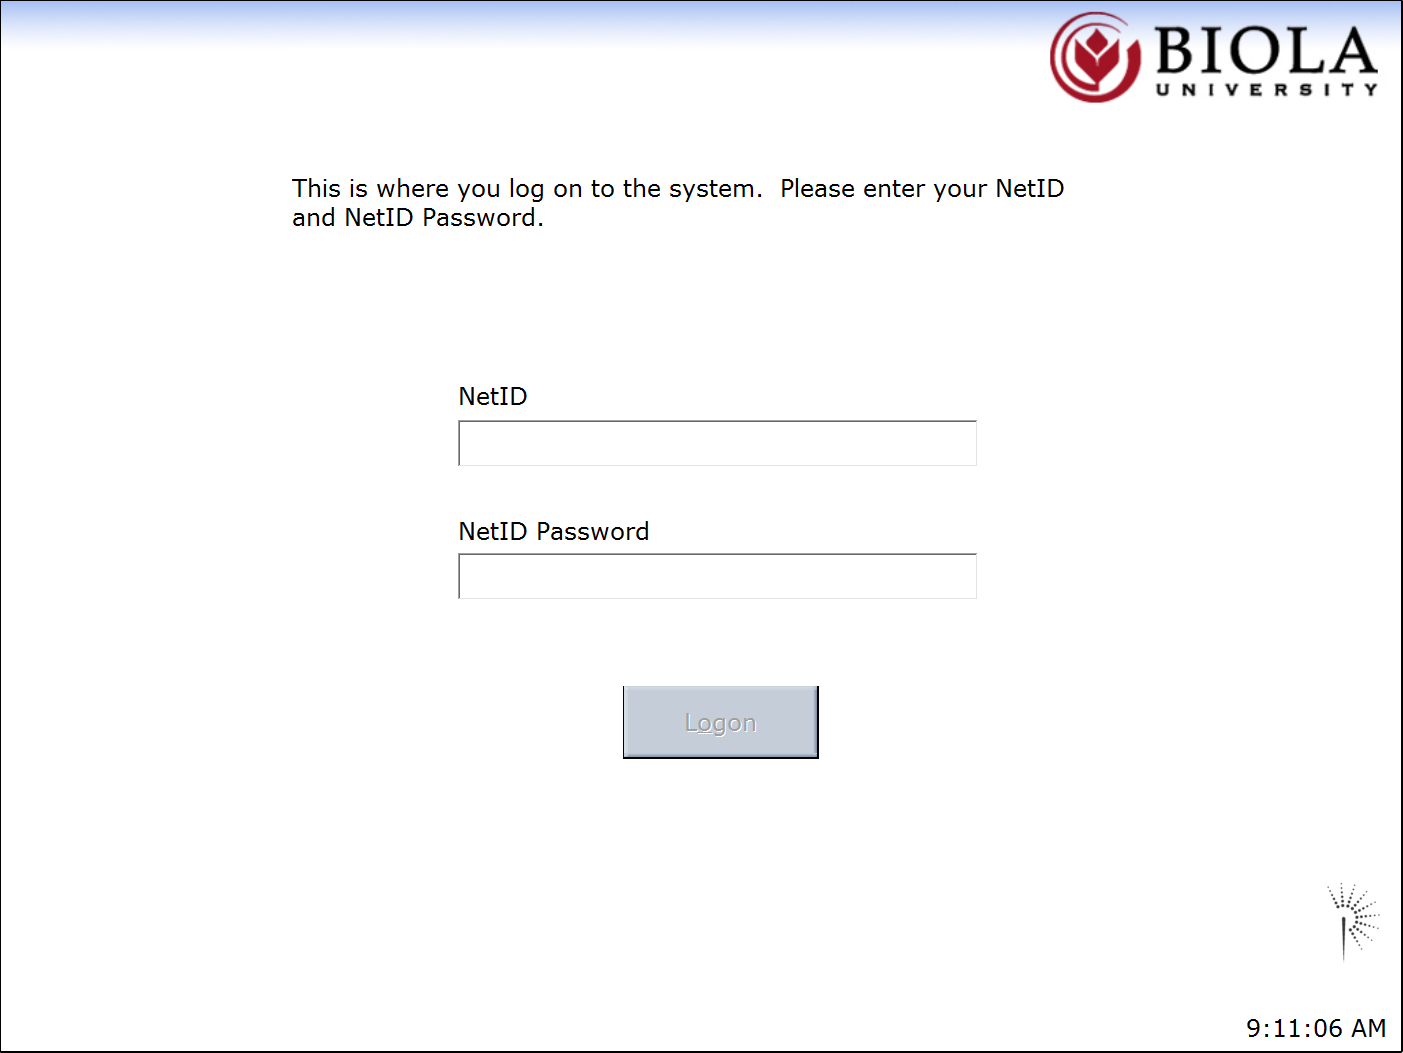 Swipe your BiolaID card or enter your NetID and NetID password to login.